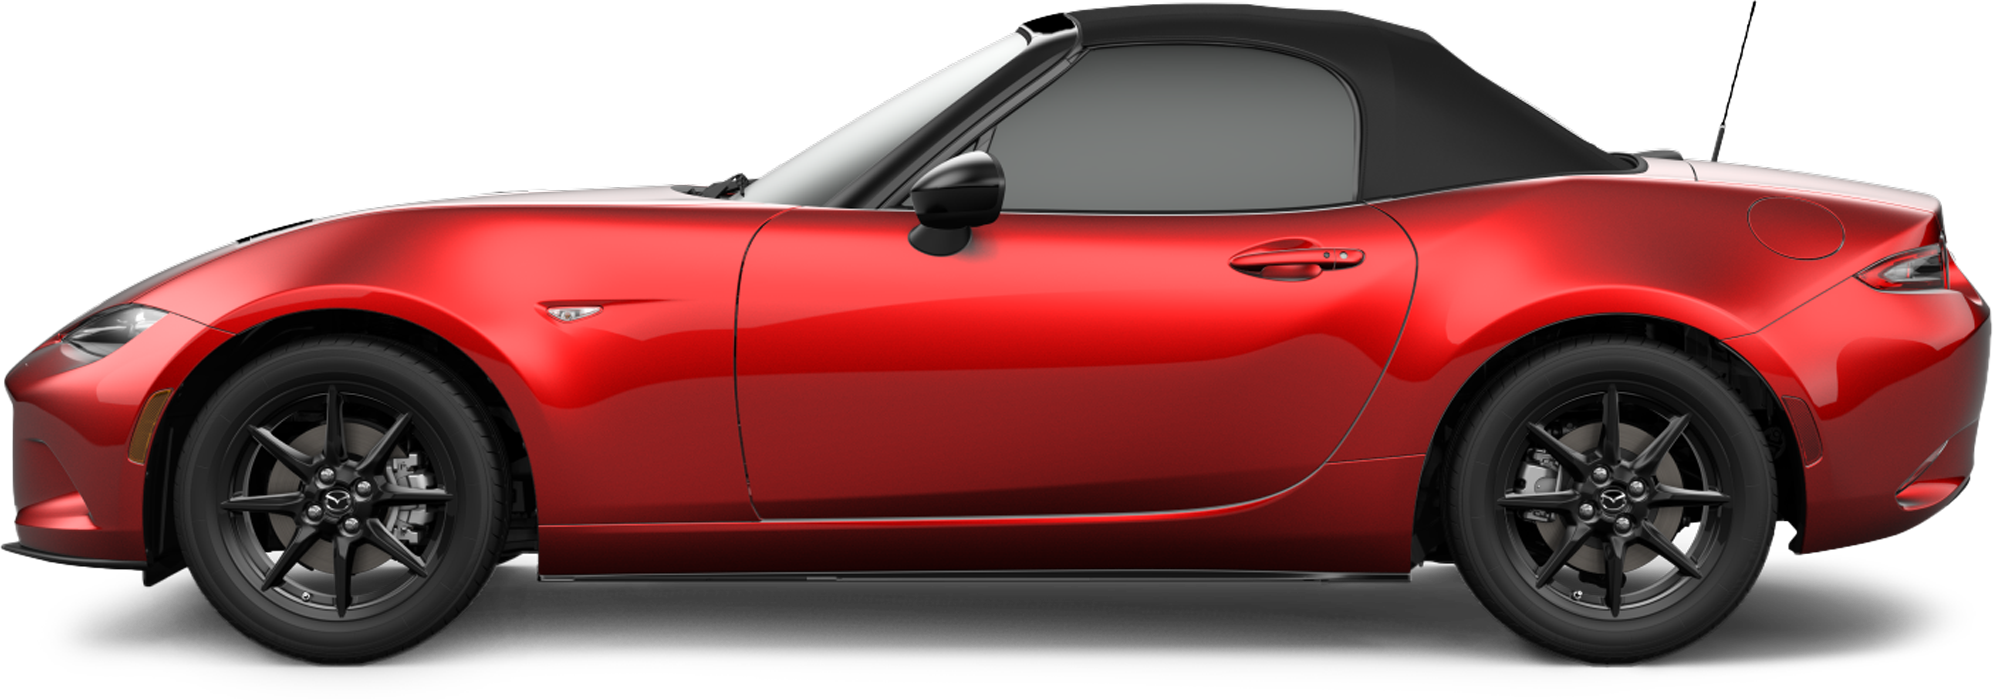 http://images.dealer.com/ddc/vehicles/2021/Mazda/MX-5%20Miata/Convertible/trim_Sport_a9ce2d/perspective/side-left/2021_24.png